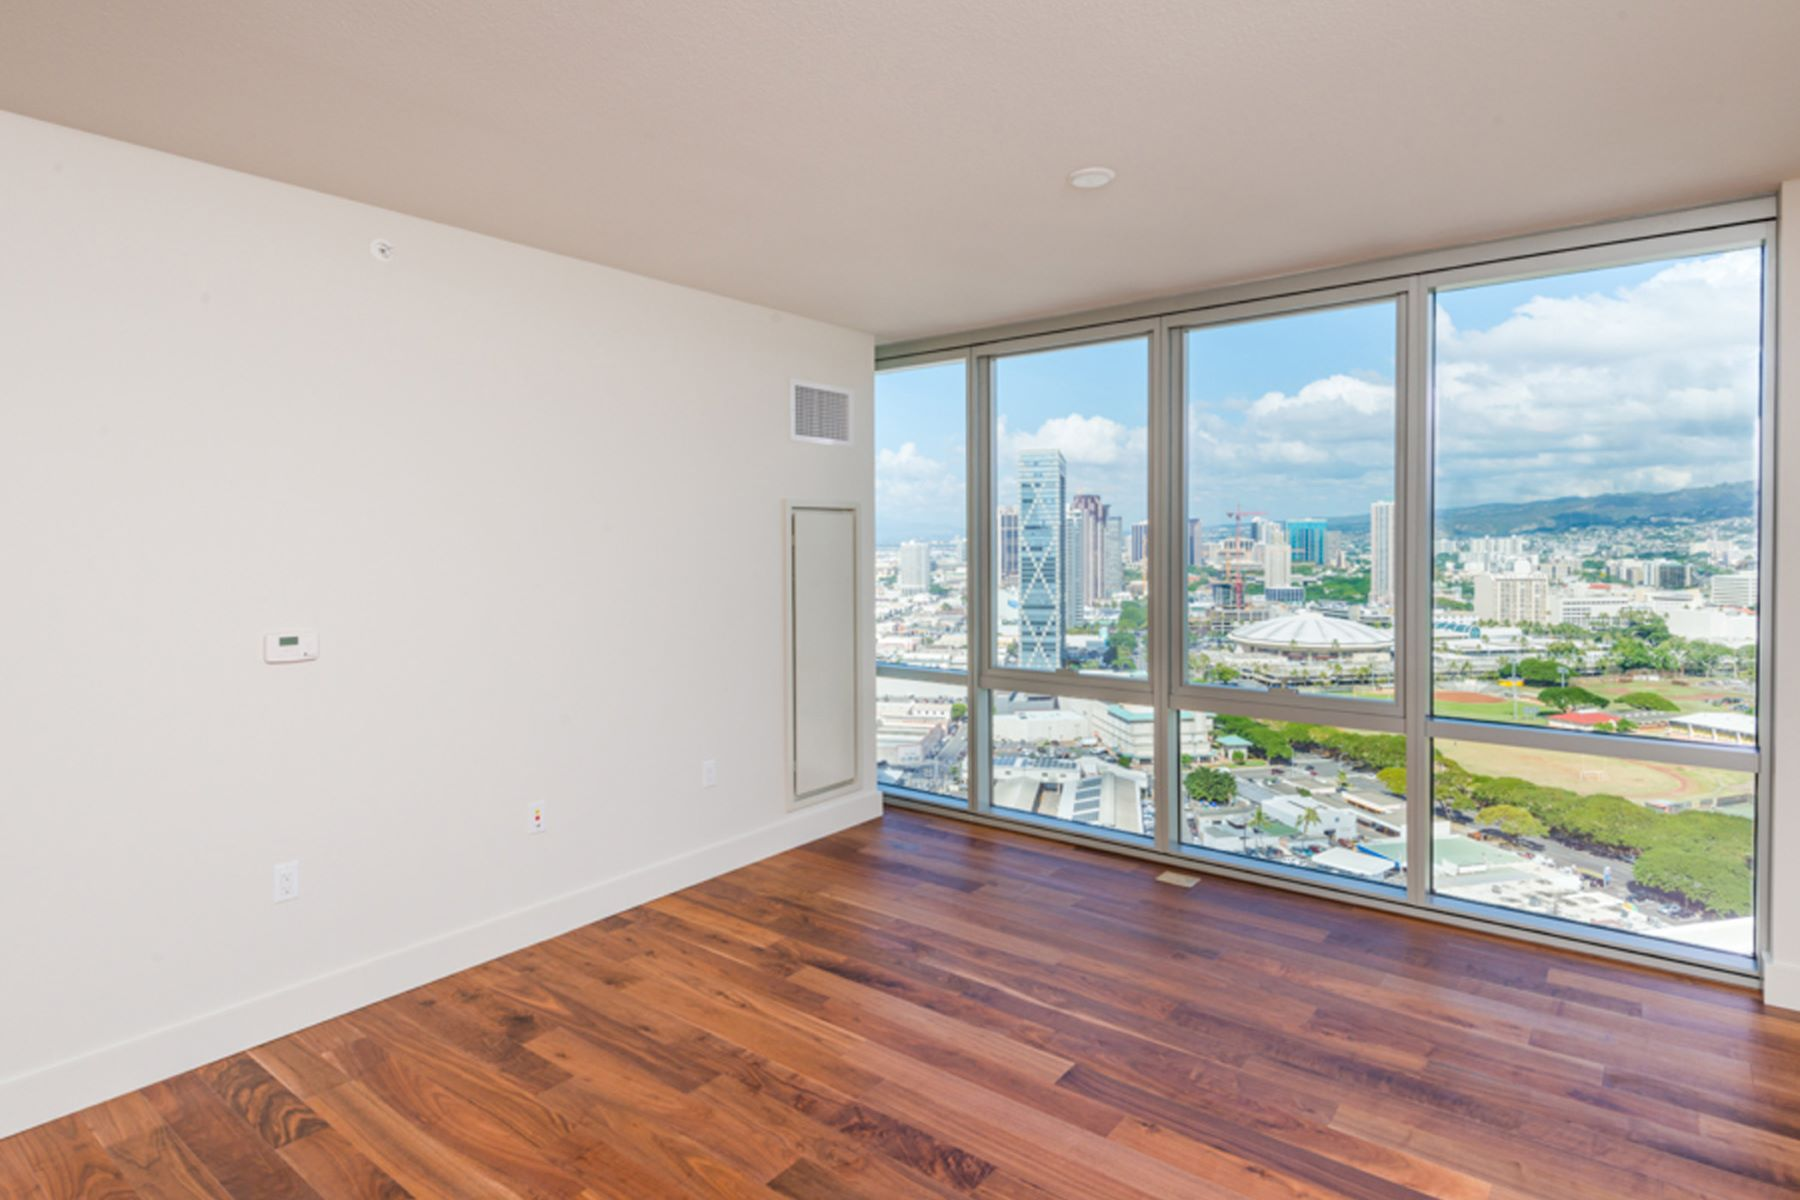 Additional photo for property listing at Mountain Views Above Kakaako 1189 Waimanu Street #2907 Honolulu, Hawaii 96814 United States